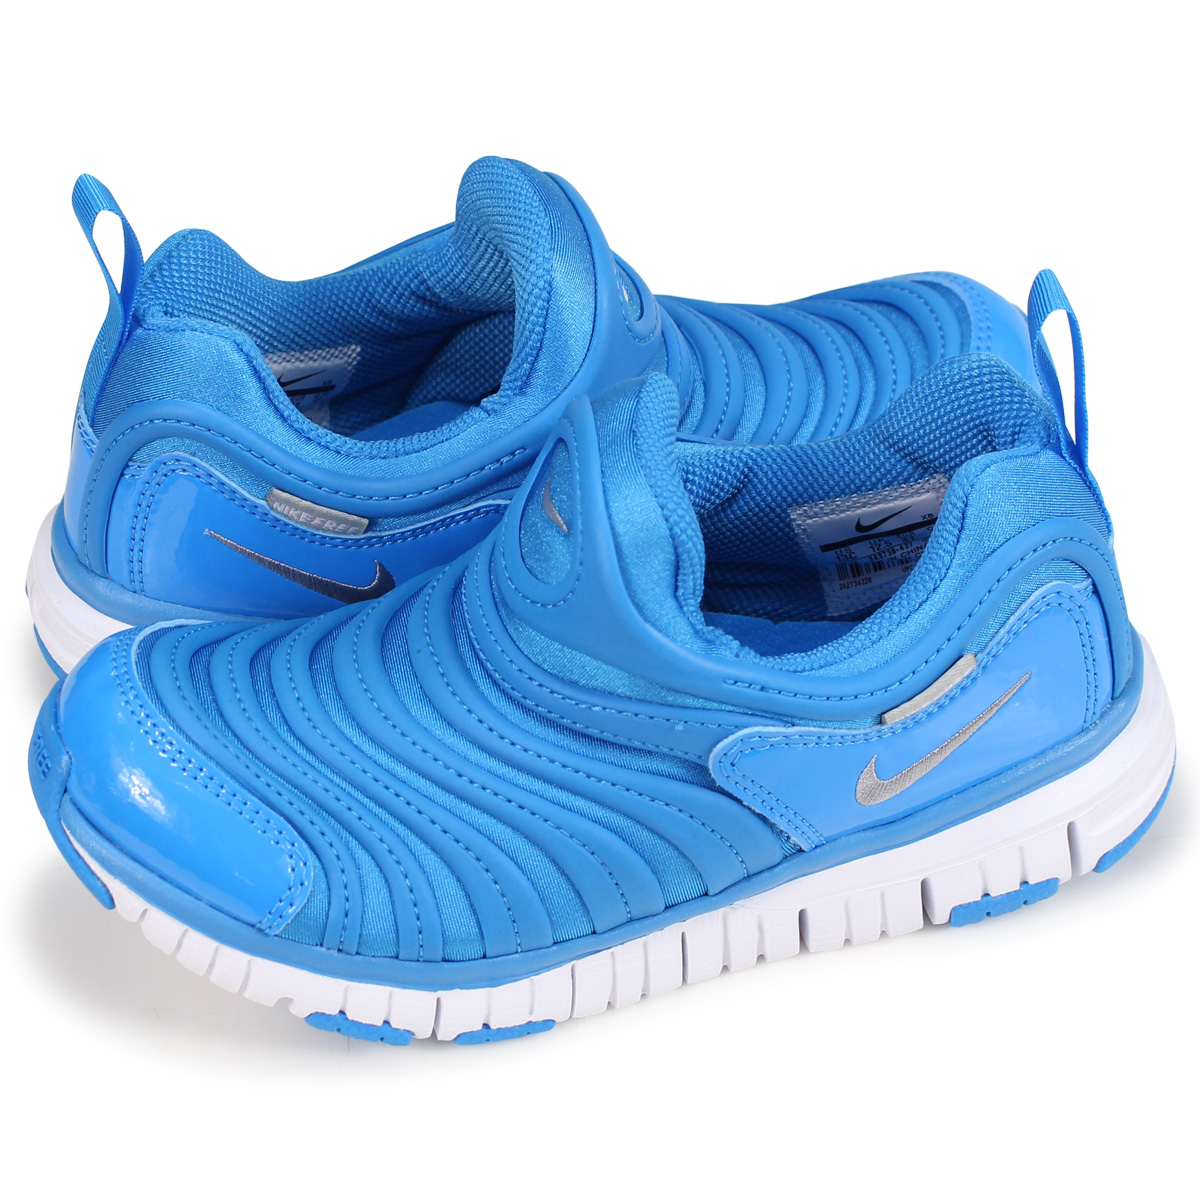 ff67f73ac315 Whats up Sports  NIKE Nike dynamo-free kids sneakers DYNAMO FREE PS ...